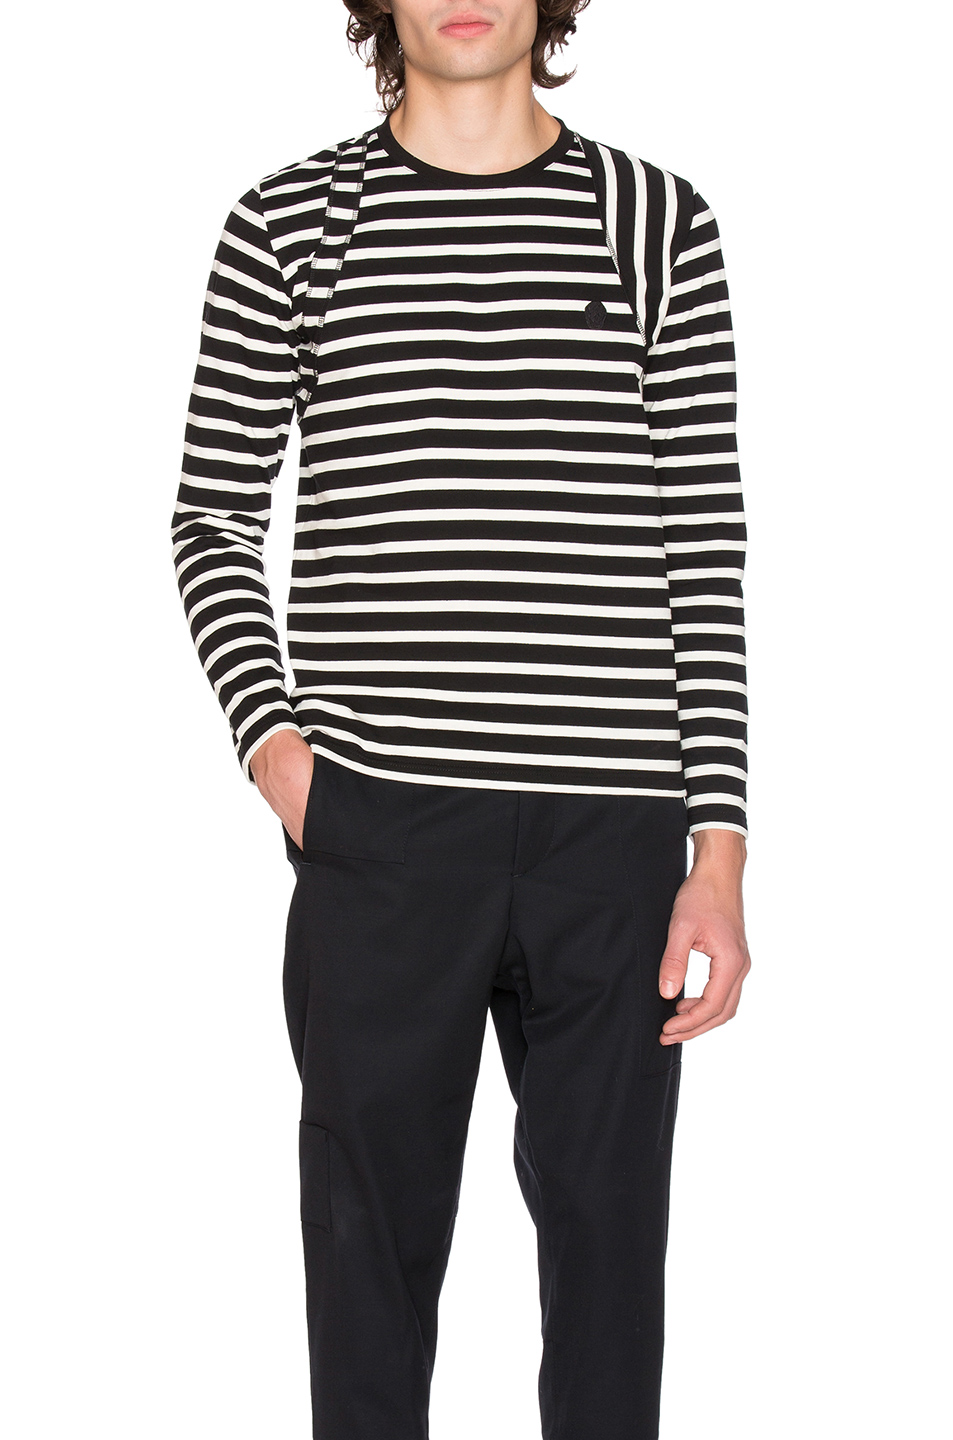 Alexander McQueen Long Sleeve Striped Shirt in Black,Stripes